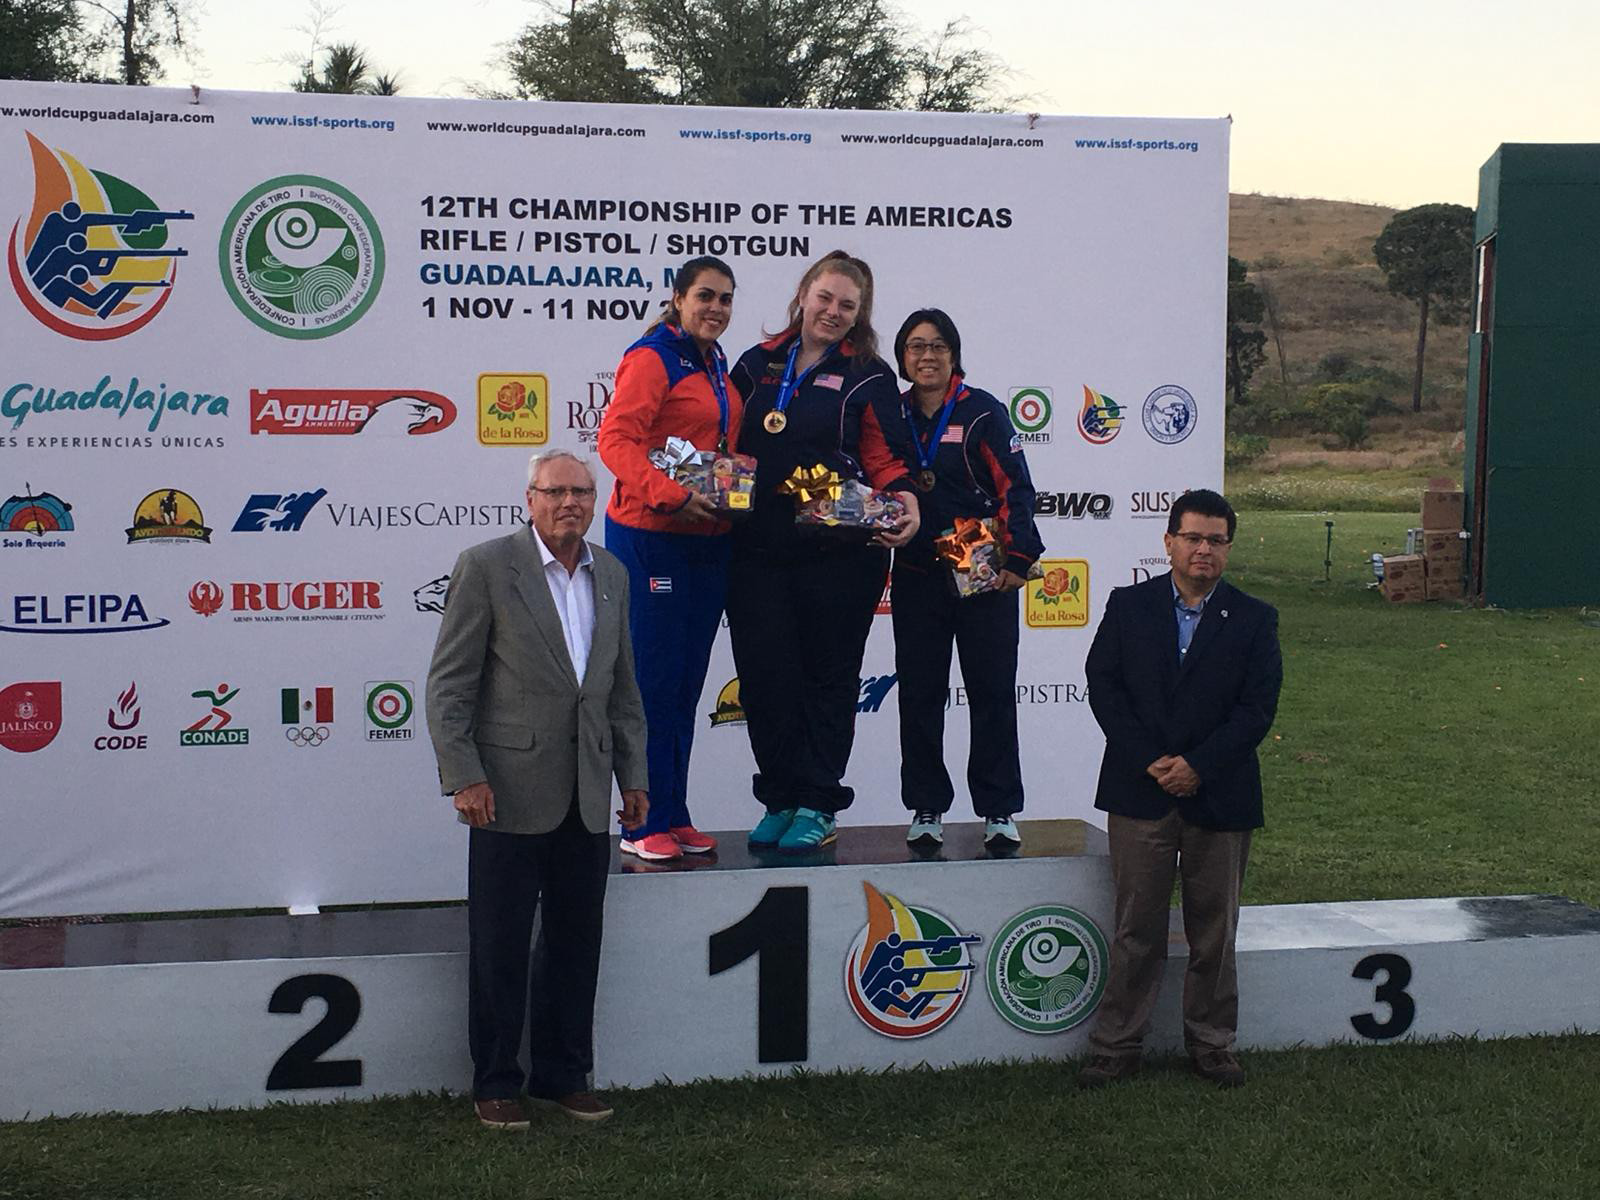 On Thursday Alexis Lagan also earned the US an Olympic quota spot by winning the women's 25m sport pistol event ©USA Shooting